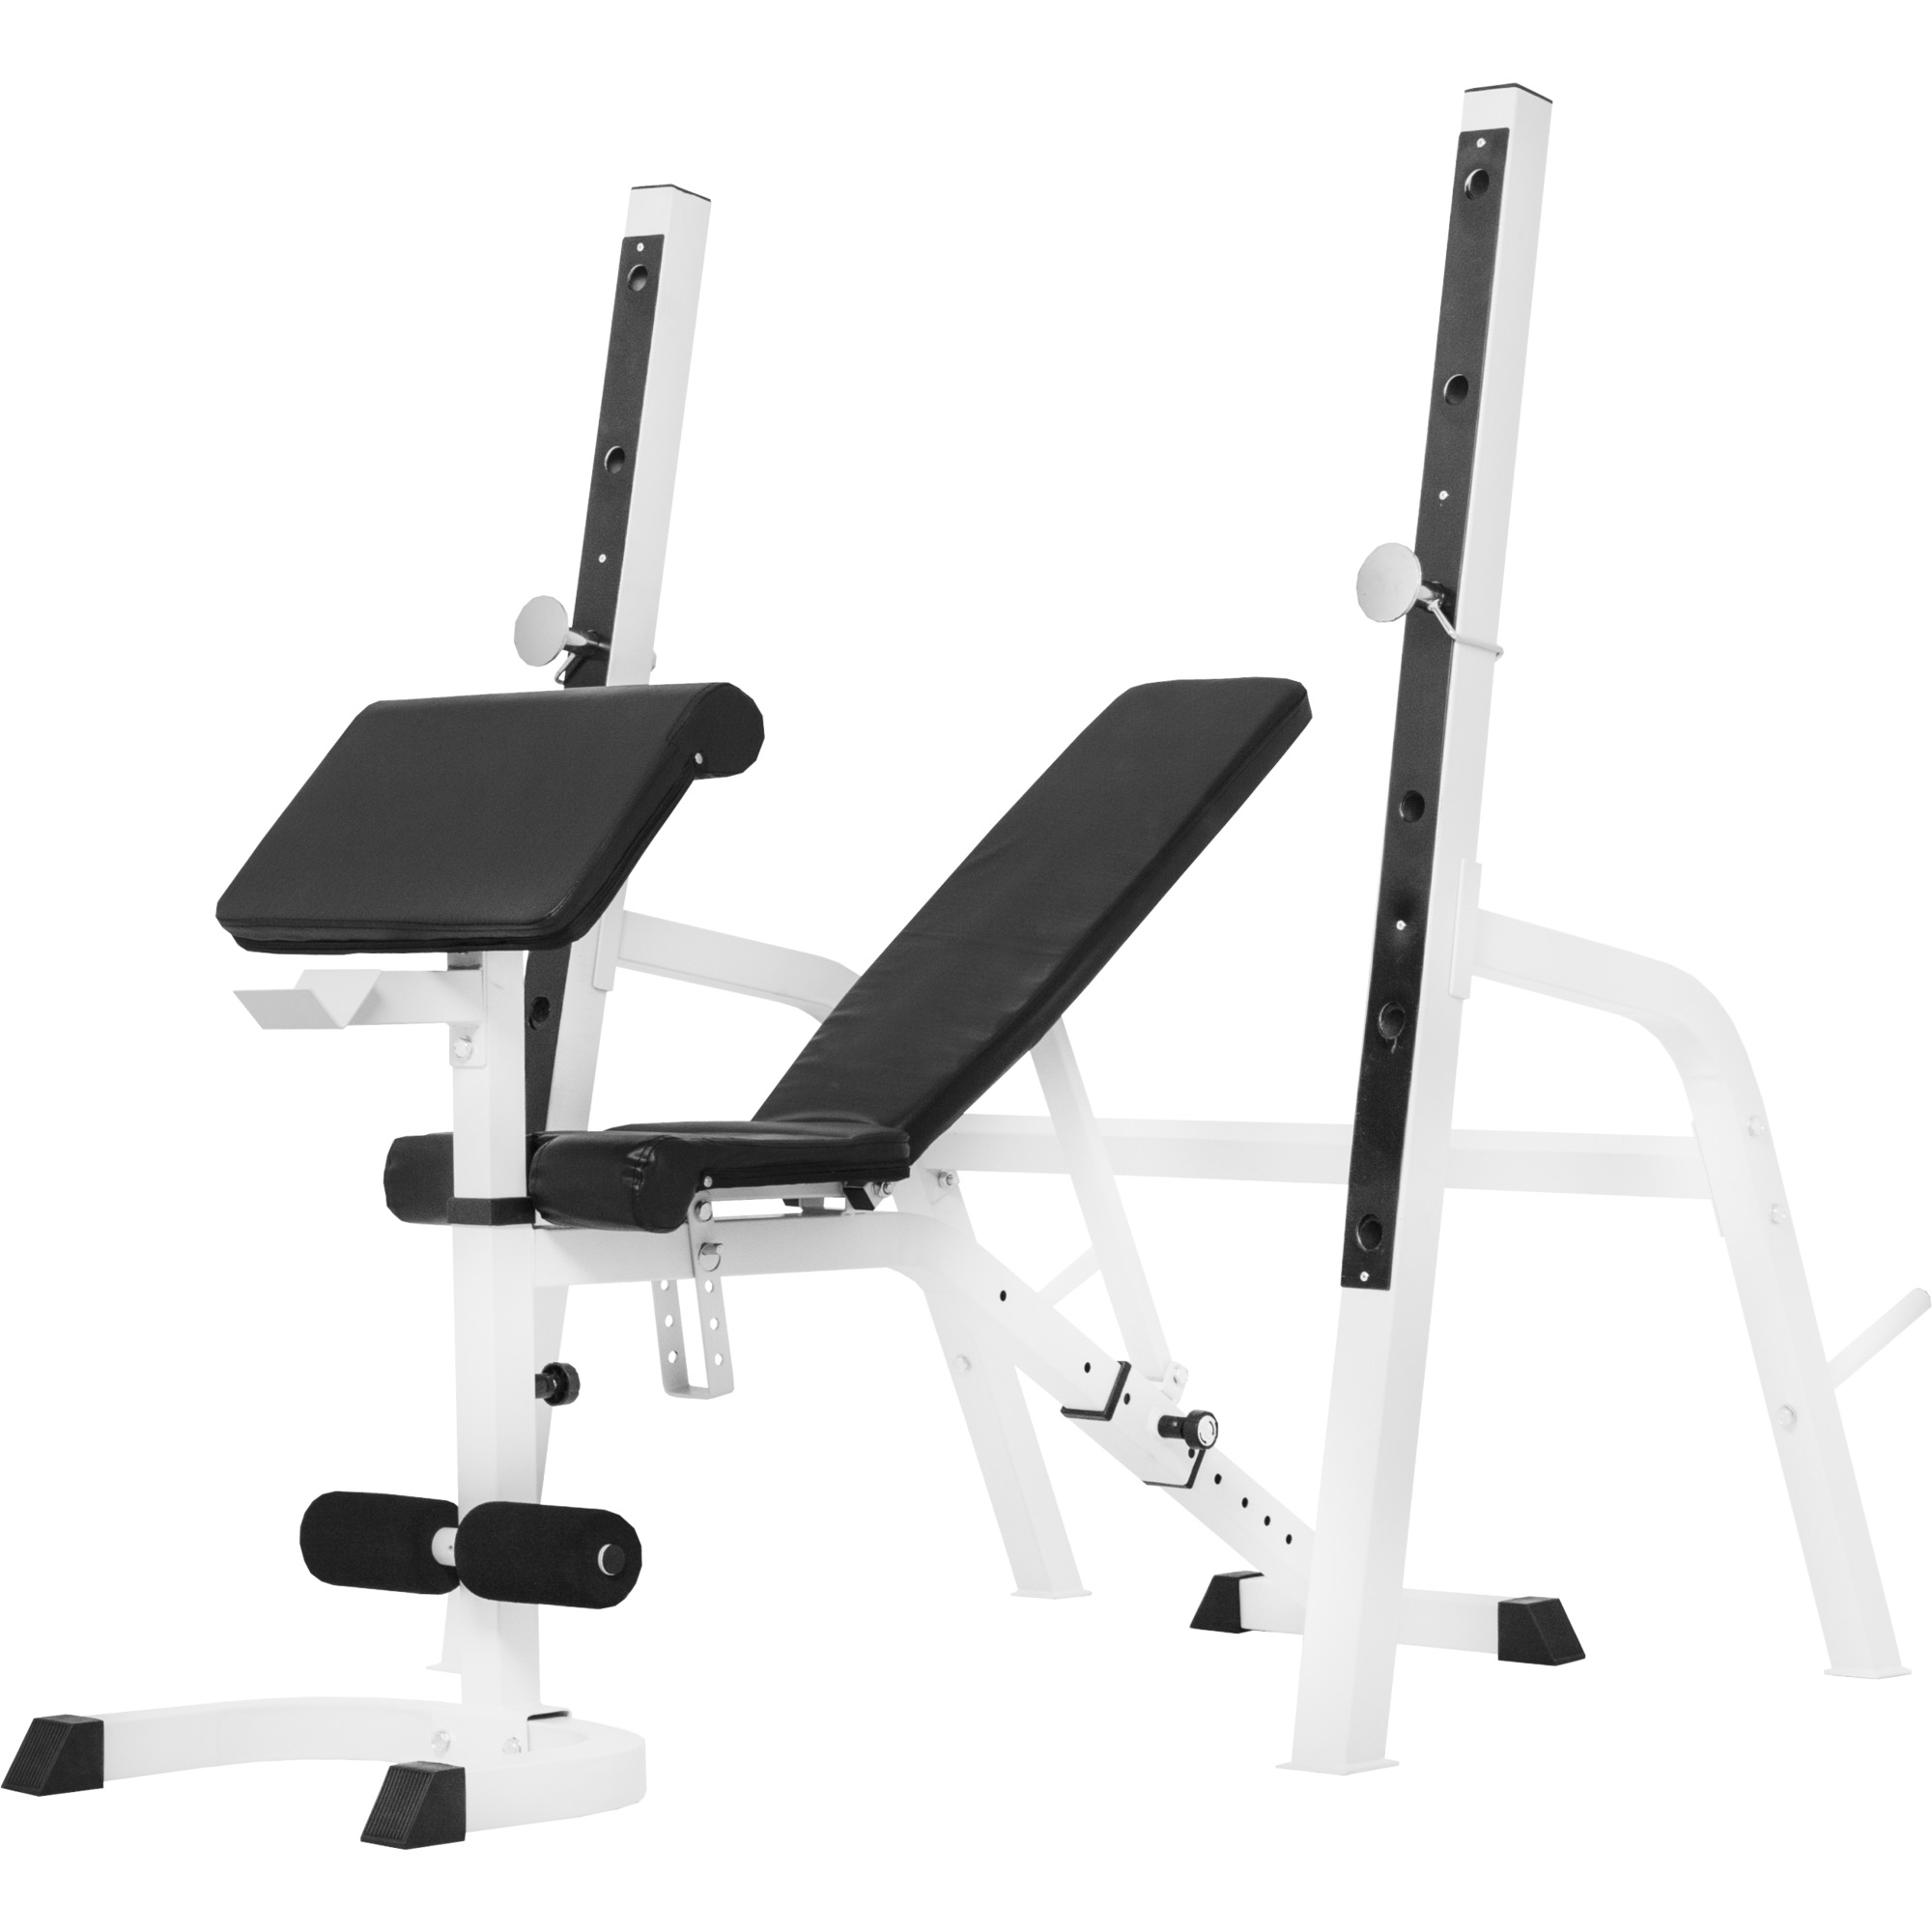 banc de musculation avec repose barre s par gs022 hantelbgs1000e 28. Black Bedroom Furniture Sets. Home Design Ideas